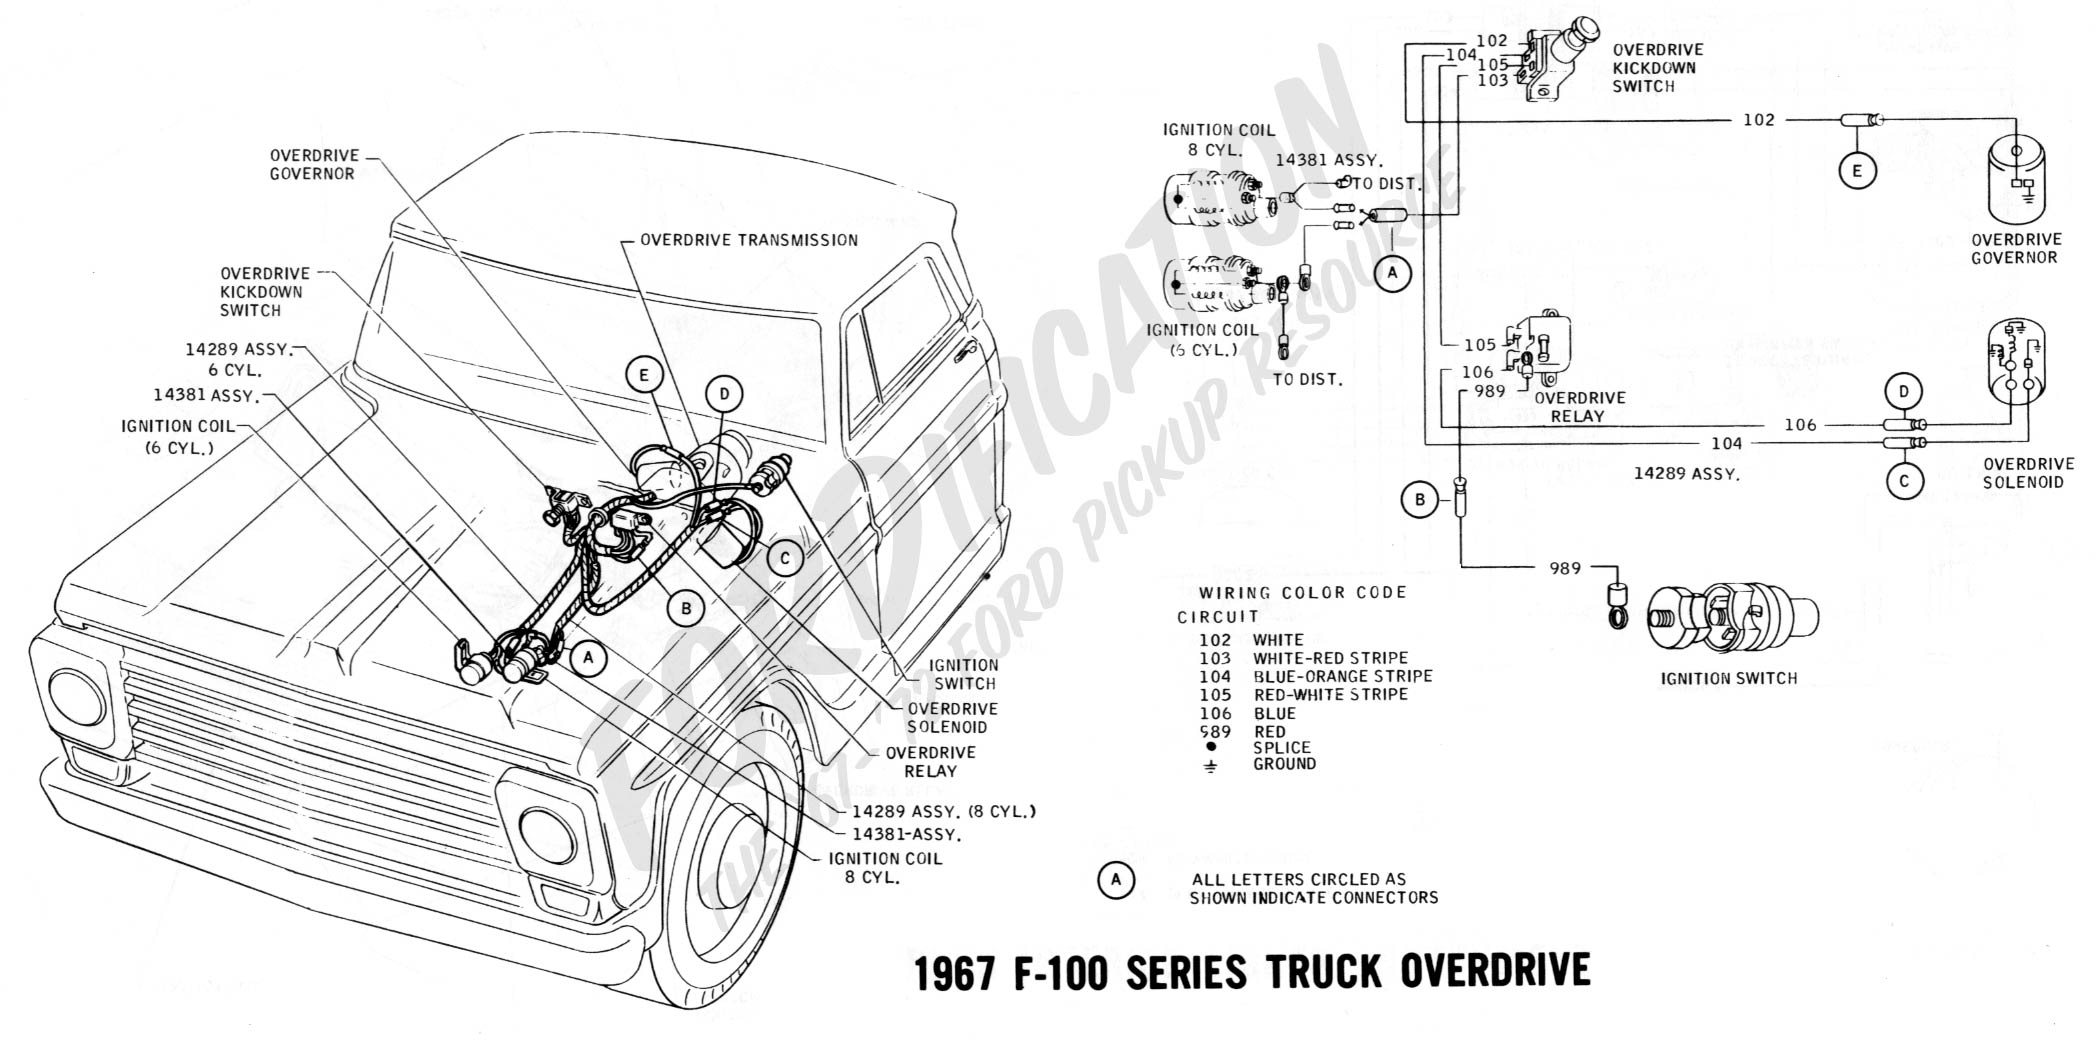 1955 f100 steering column wiring diagram wiring diagram u2022 rh msblog co